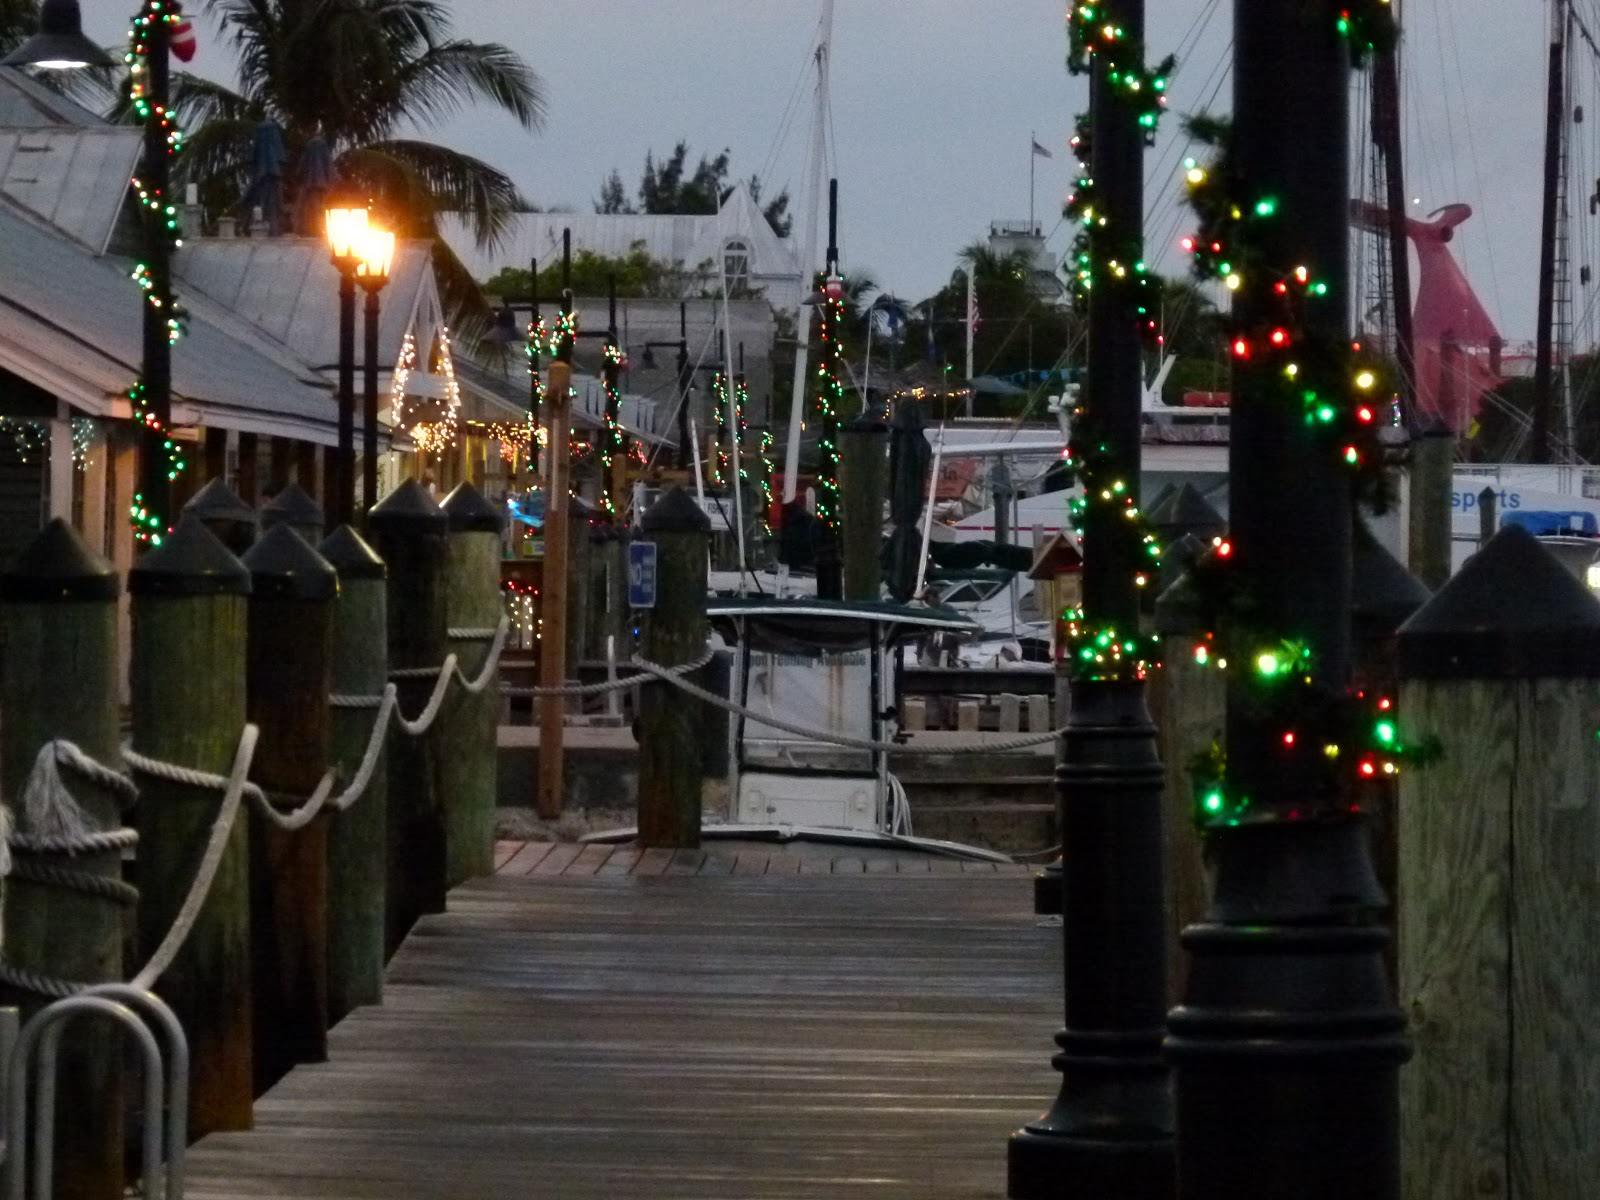 Key West vacation and visit guide: Christmas Bight